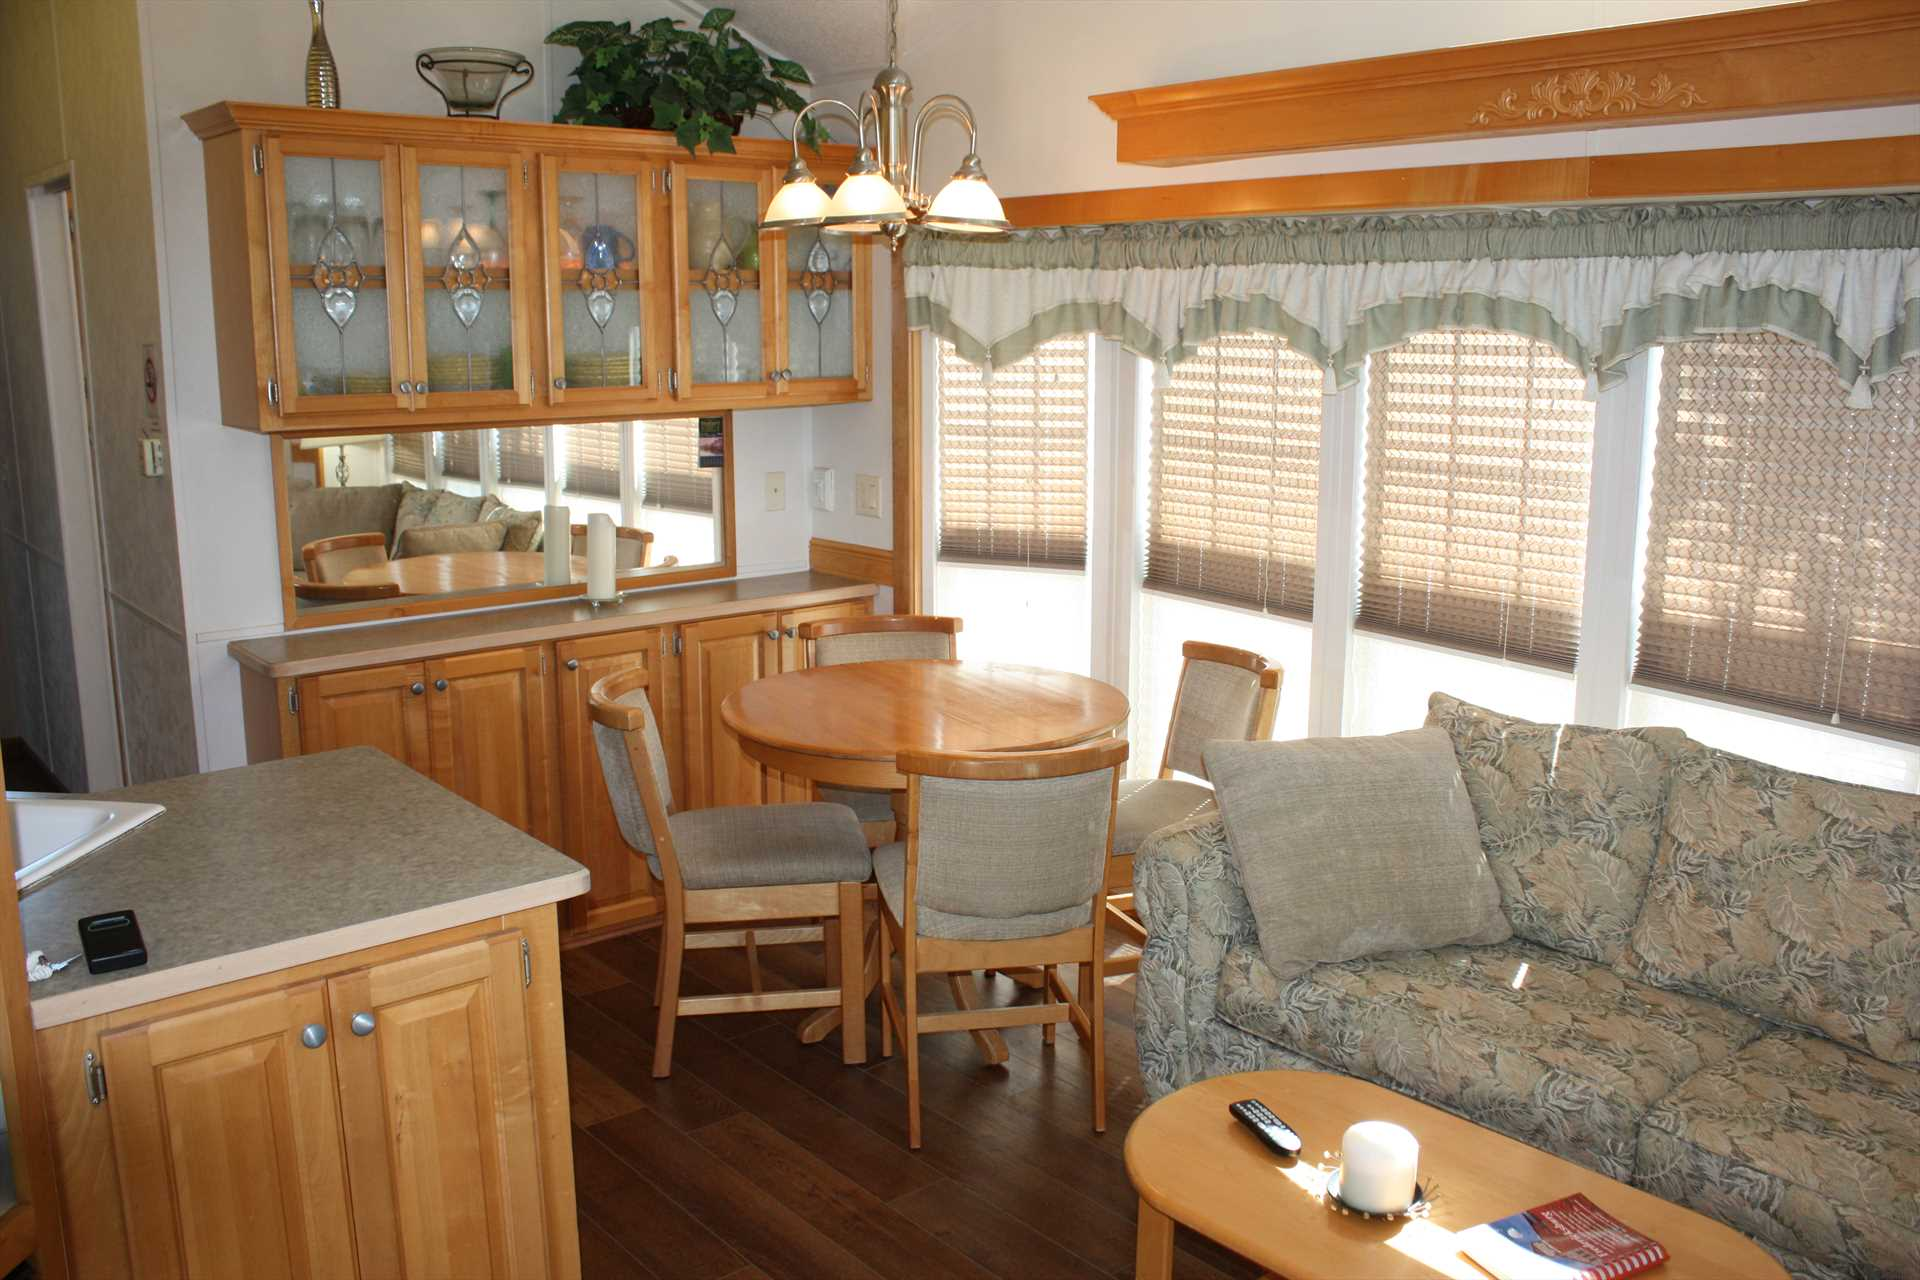 Homey country charm fills the entire cabin. What a delightful place to enjoy a country breakfast!